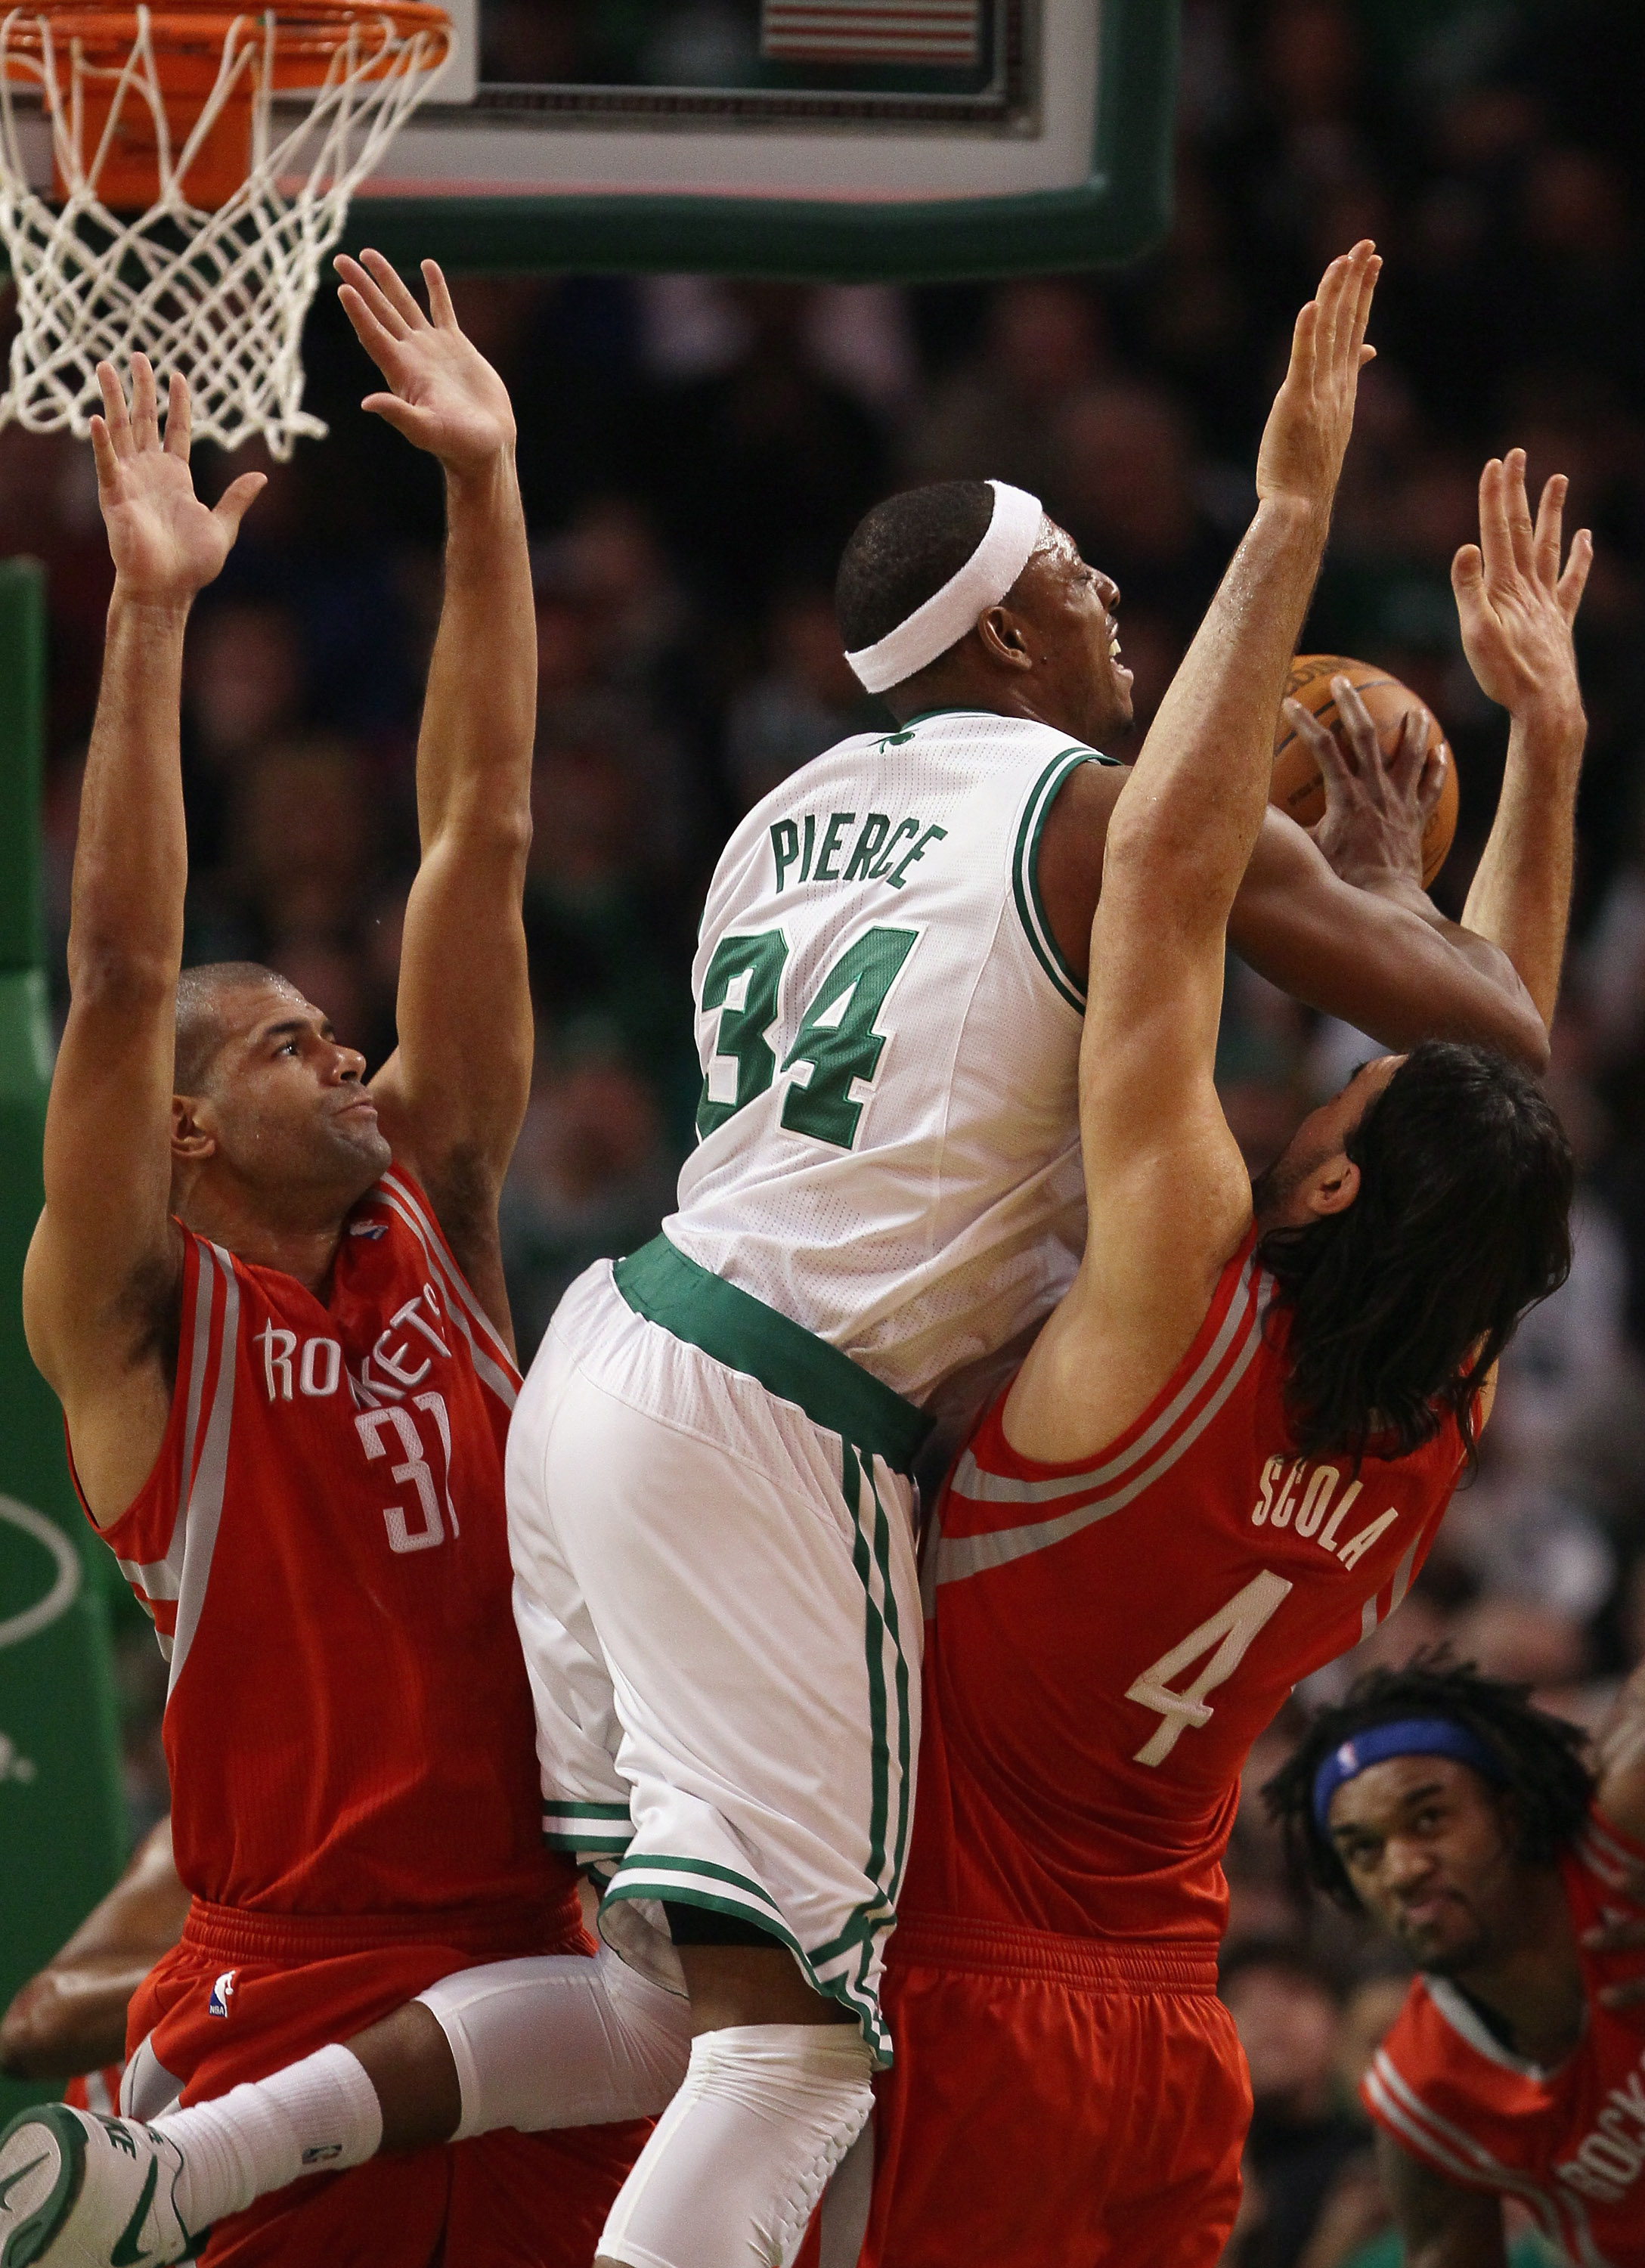 BOSTON, MA - JANUARY 10:  Paul Pierce #34 of the Boston Celtics tries to pass the ball as Shane Battier #31 and Luis Scola #4 of the Houston Rockets defend on January 10, 2011 at the TD Garden in Boston, Massachusetts.  The Rockets defeated the Celtics 10